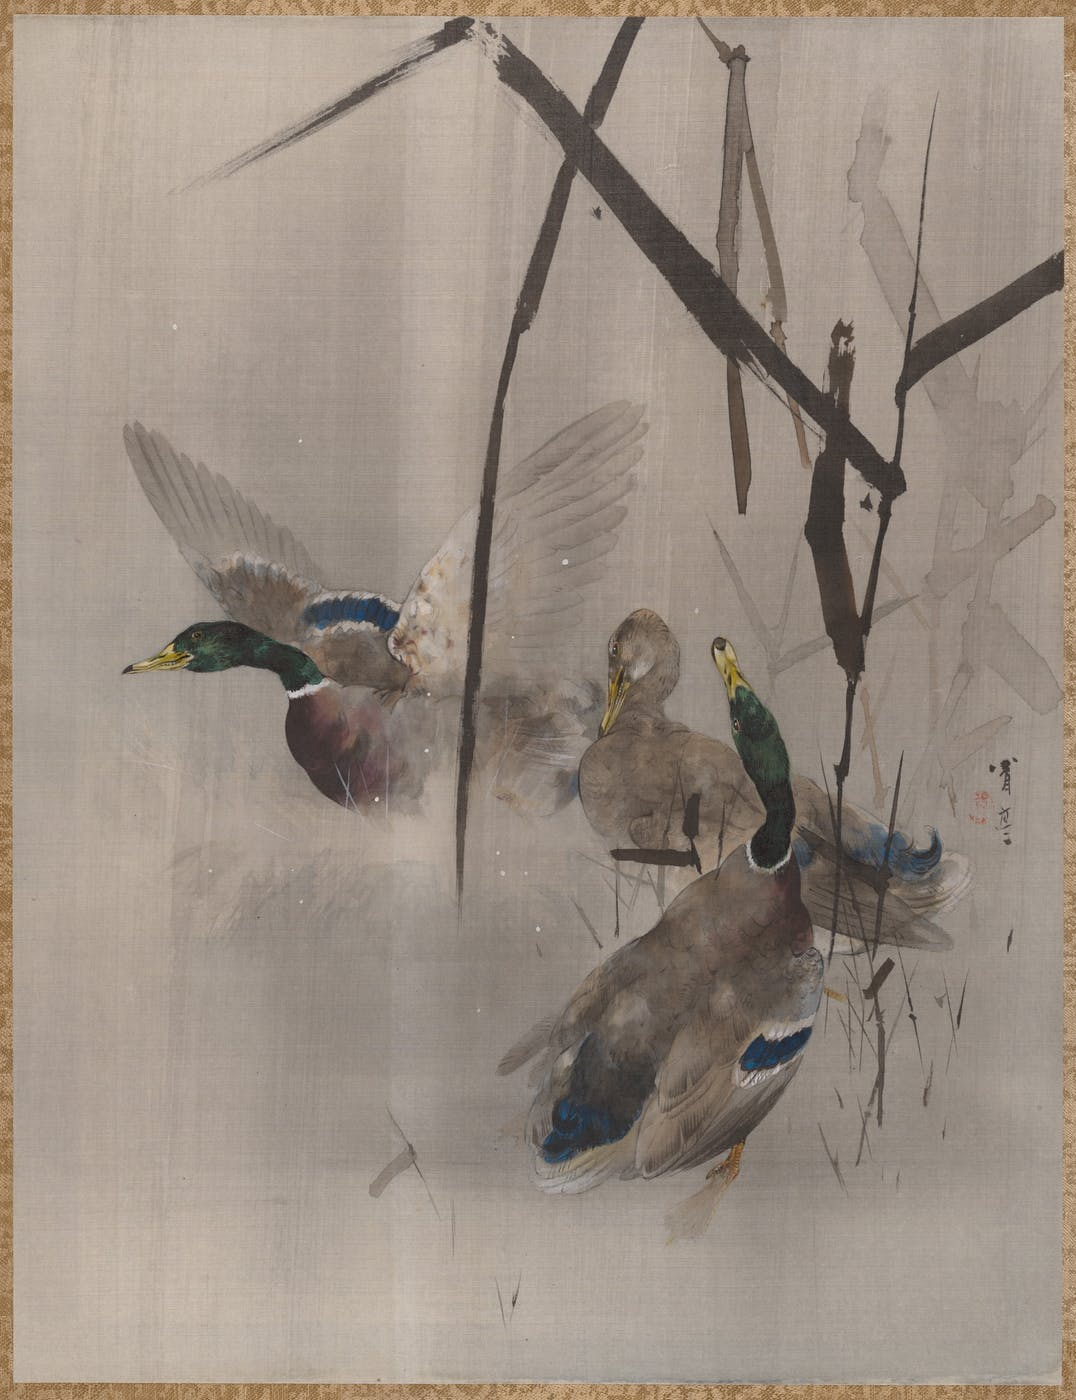 Ducks in the Rushes by Watanabi Seitei, at The Met, New York